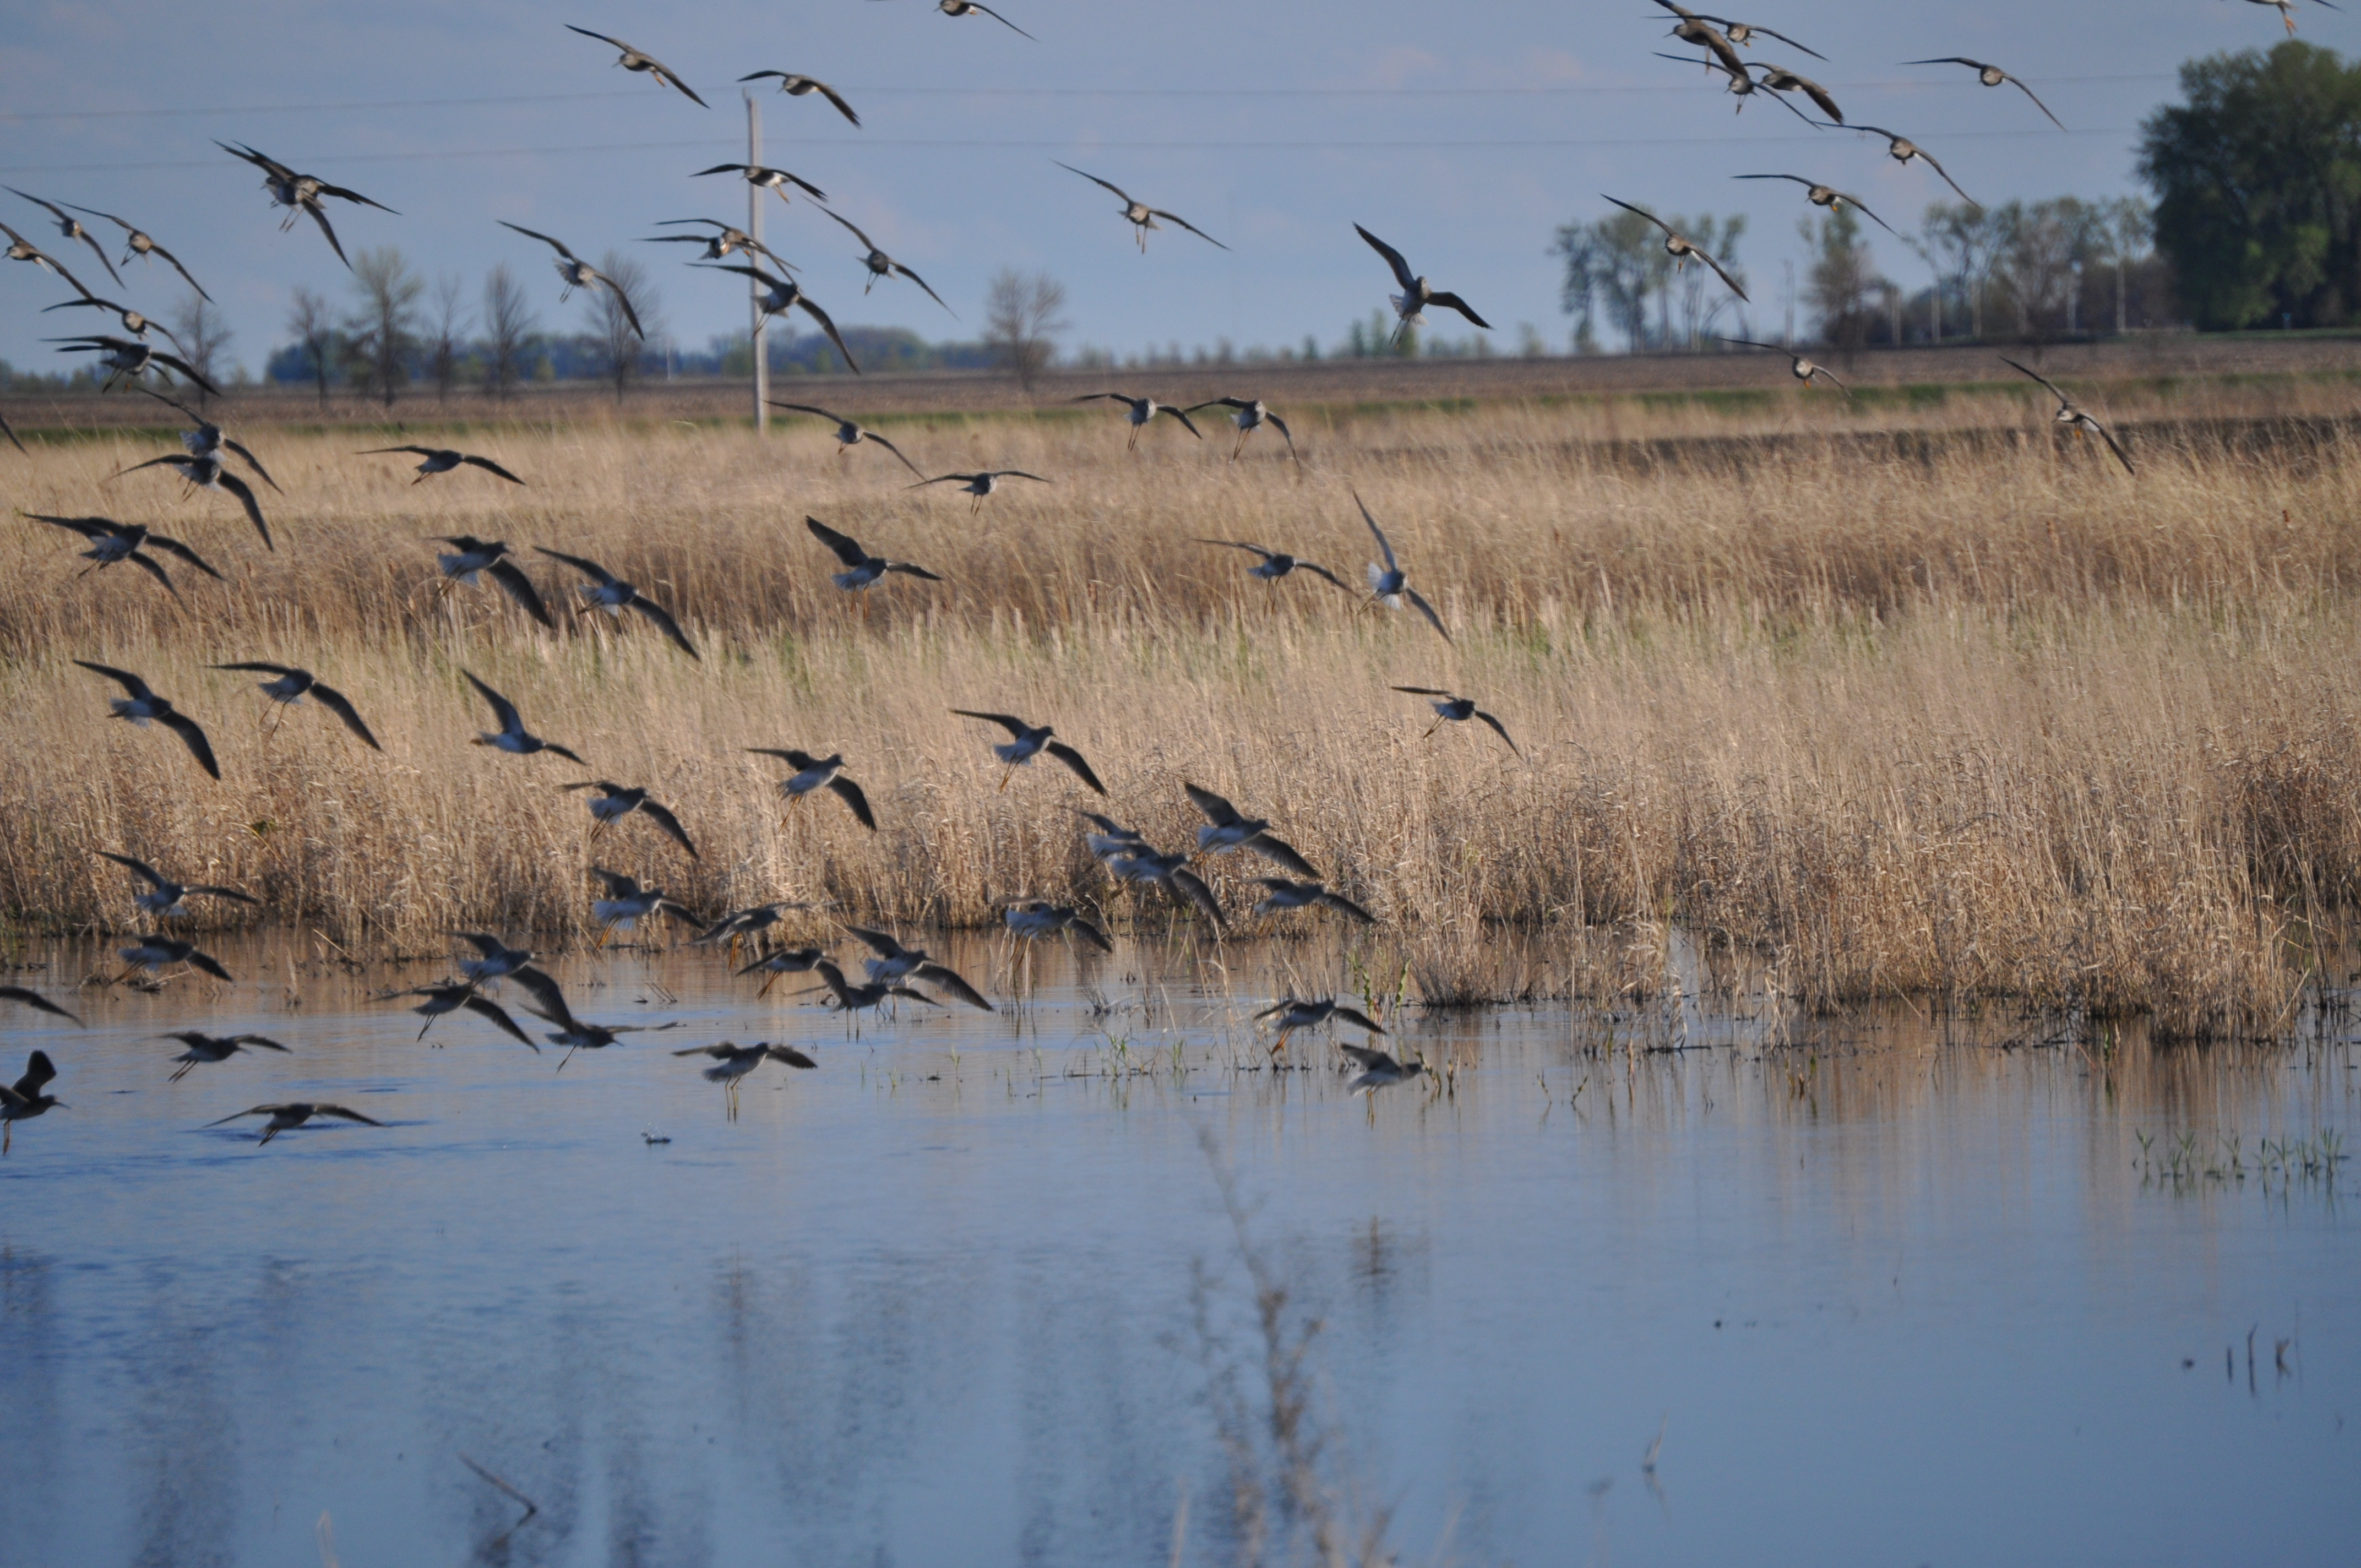 a flock of shorebirds at a wetland restoration easement